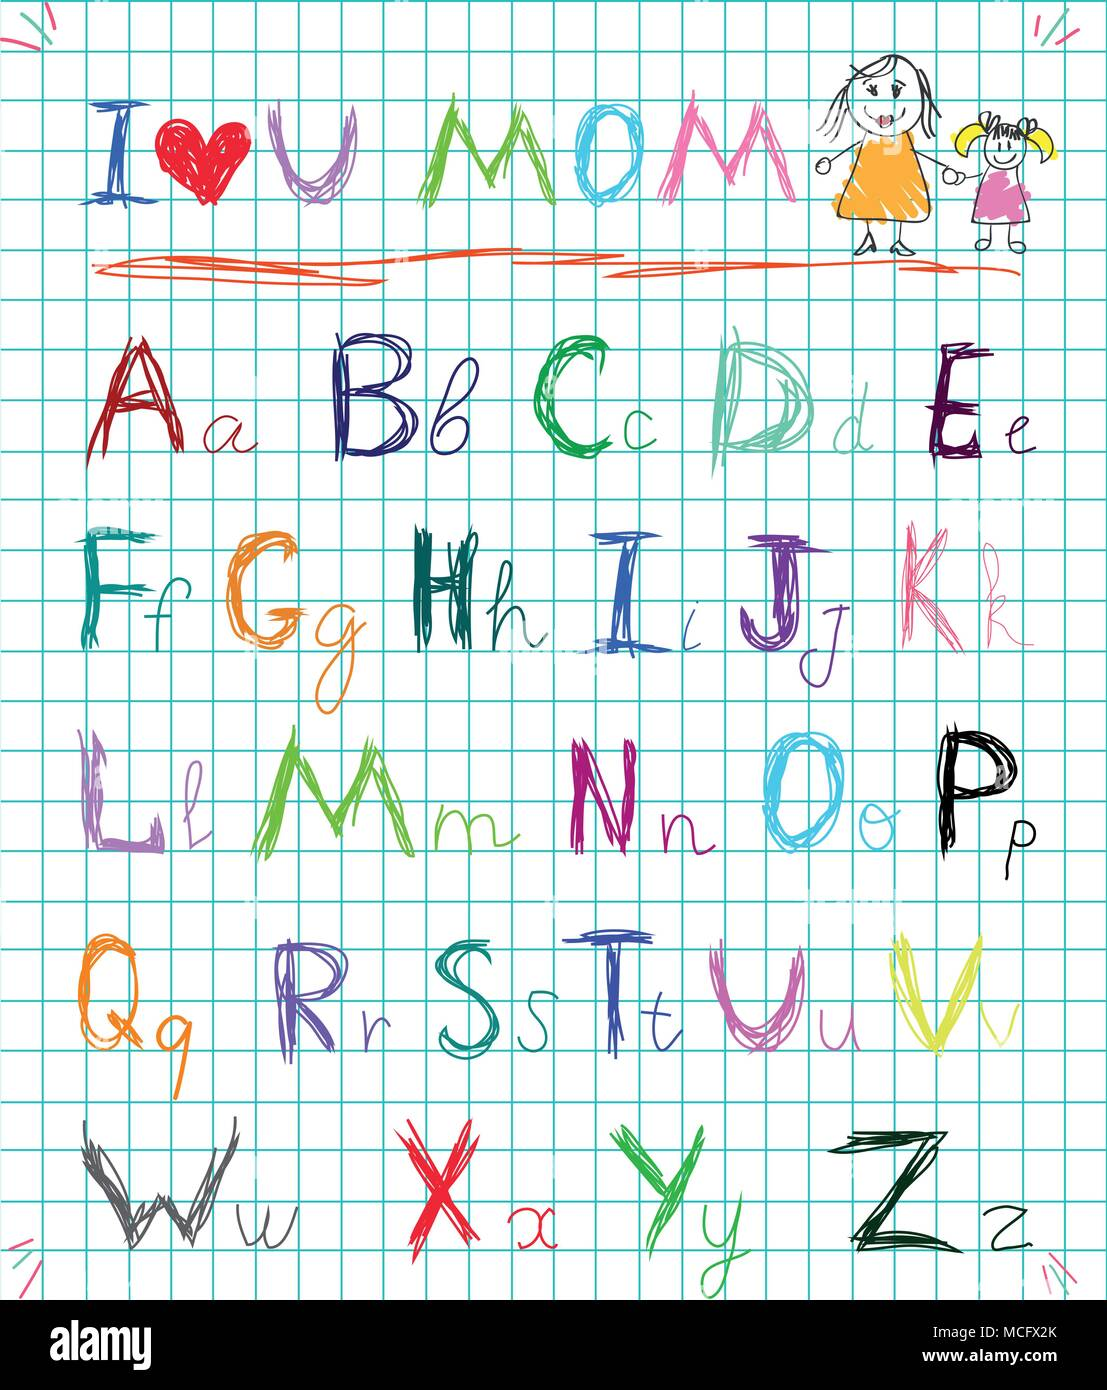 Multicolored baby sketch hand drawn doodle alphabet letters on squared notebook page isolated vector illustration with I love you mom headline and kid - Stock Vector